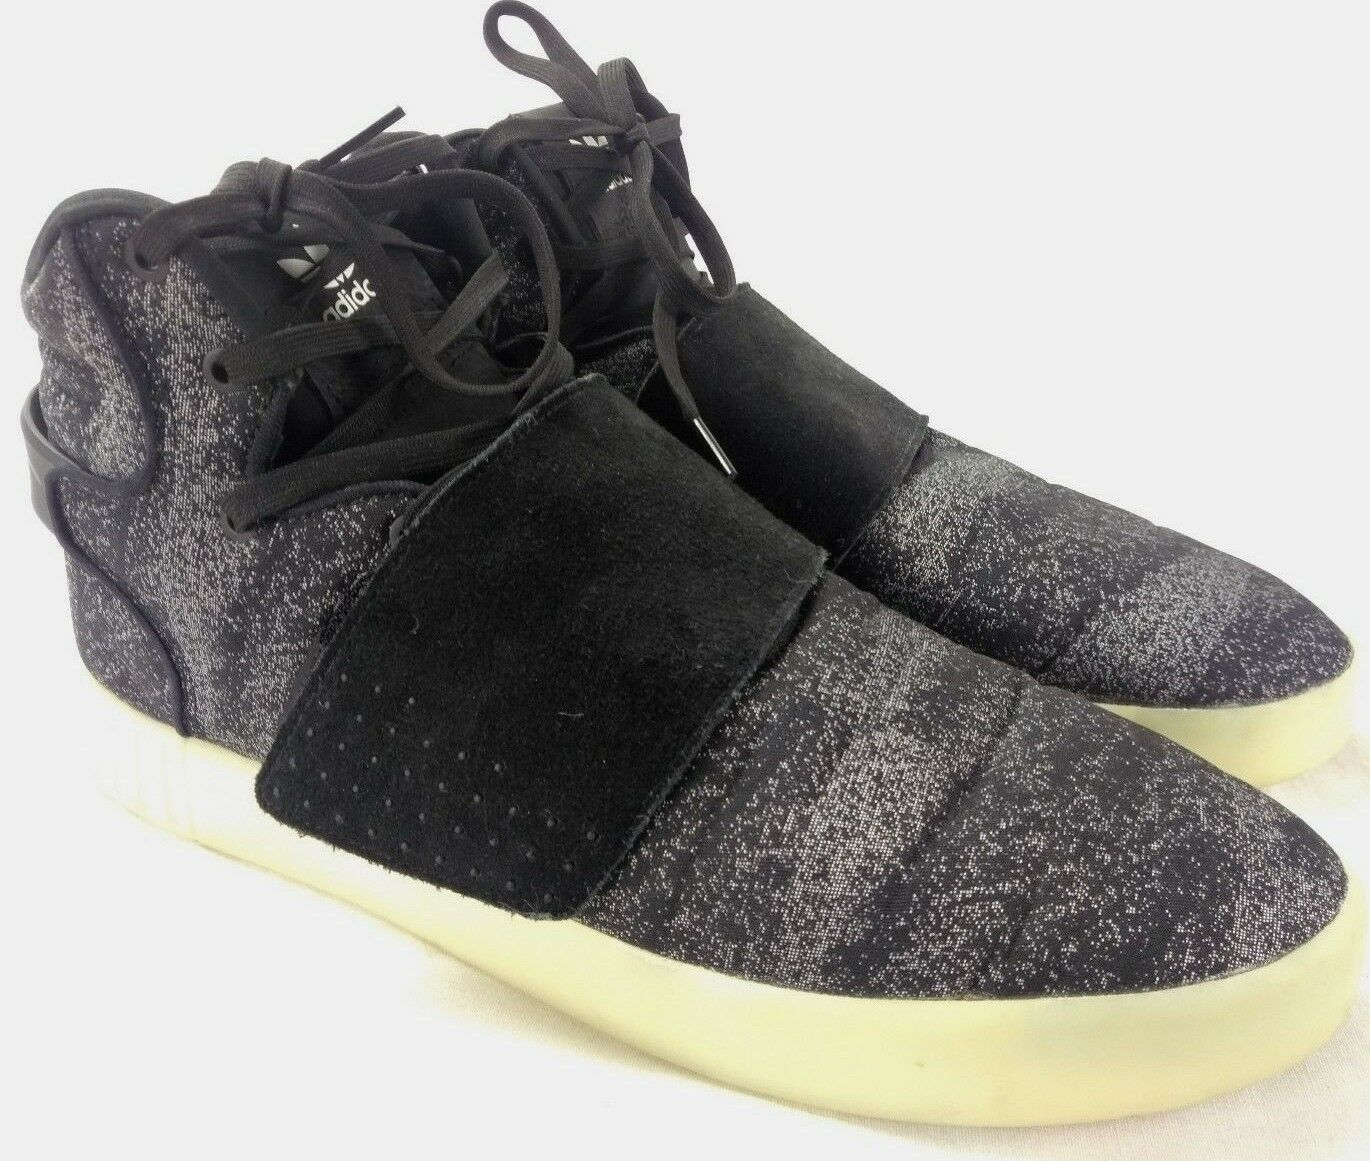 Adidas Tubular Invader Strap BB8945 Men Sz 12 High Top Basketball shoes 202-10